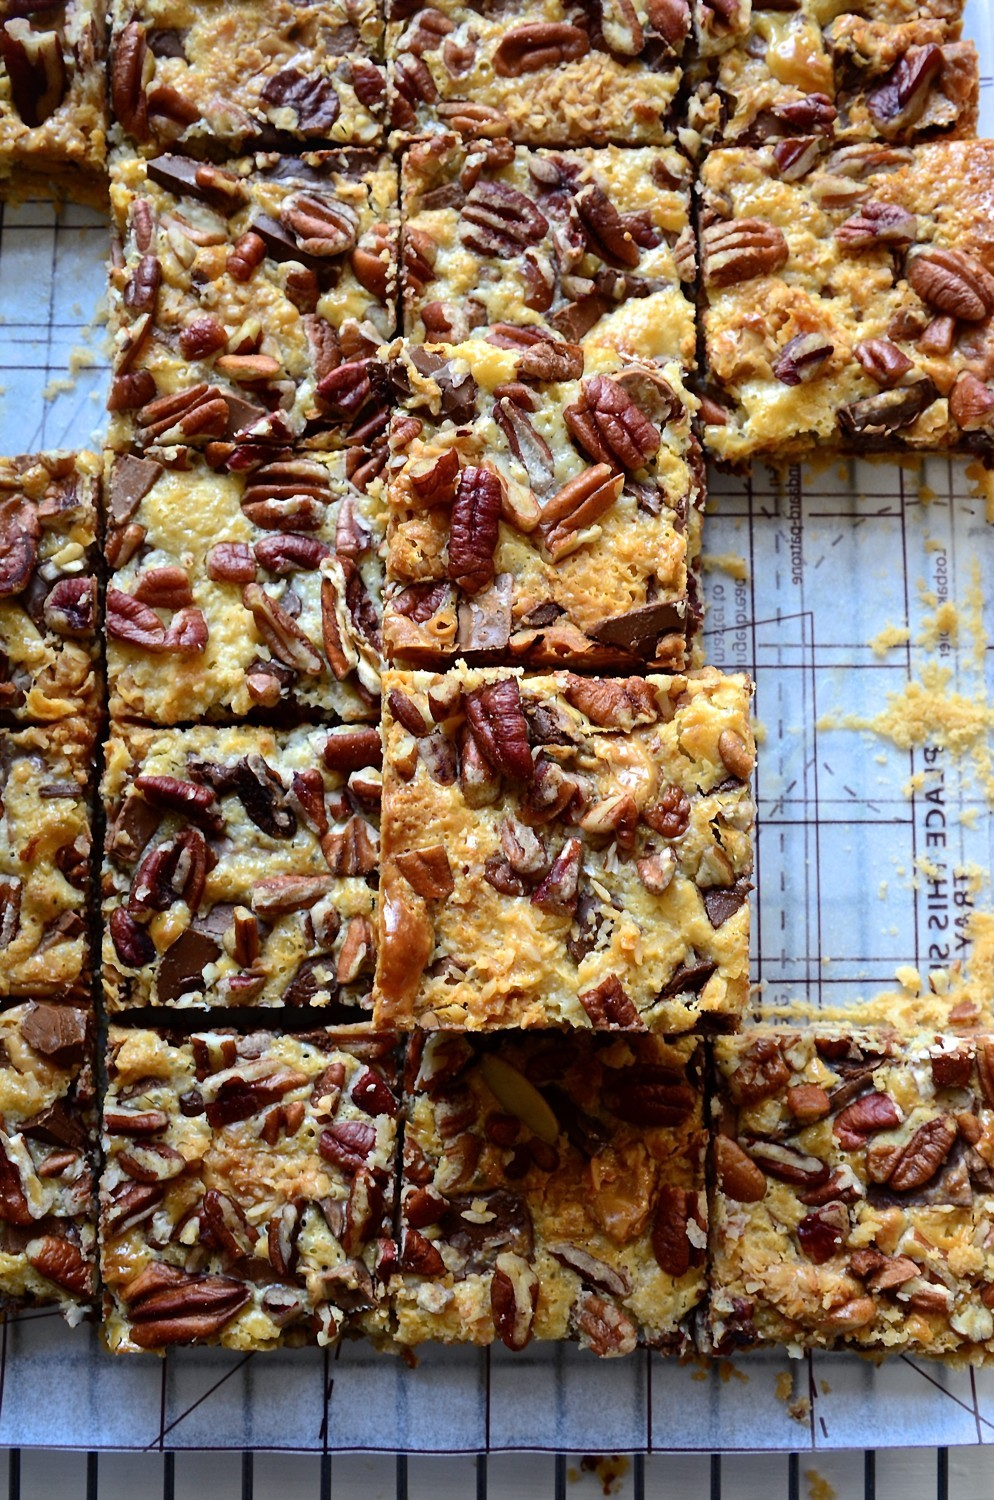 Peanut butter and toffee-caramel chocolate bars